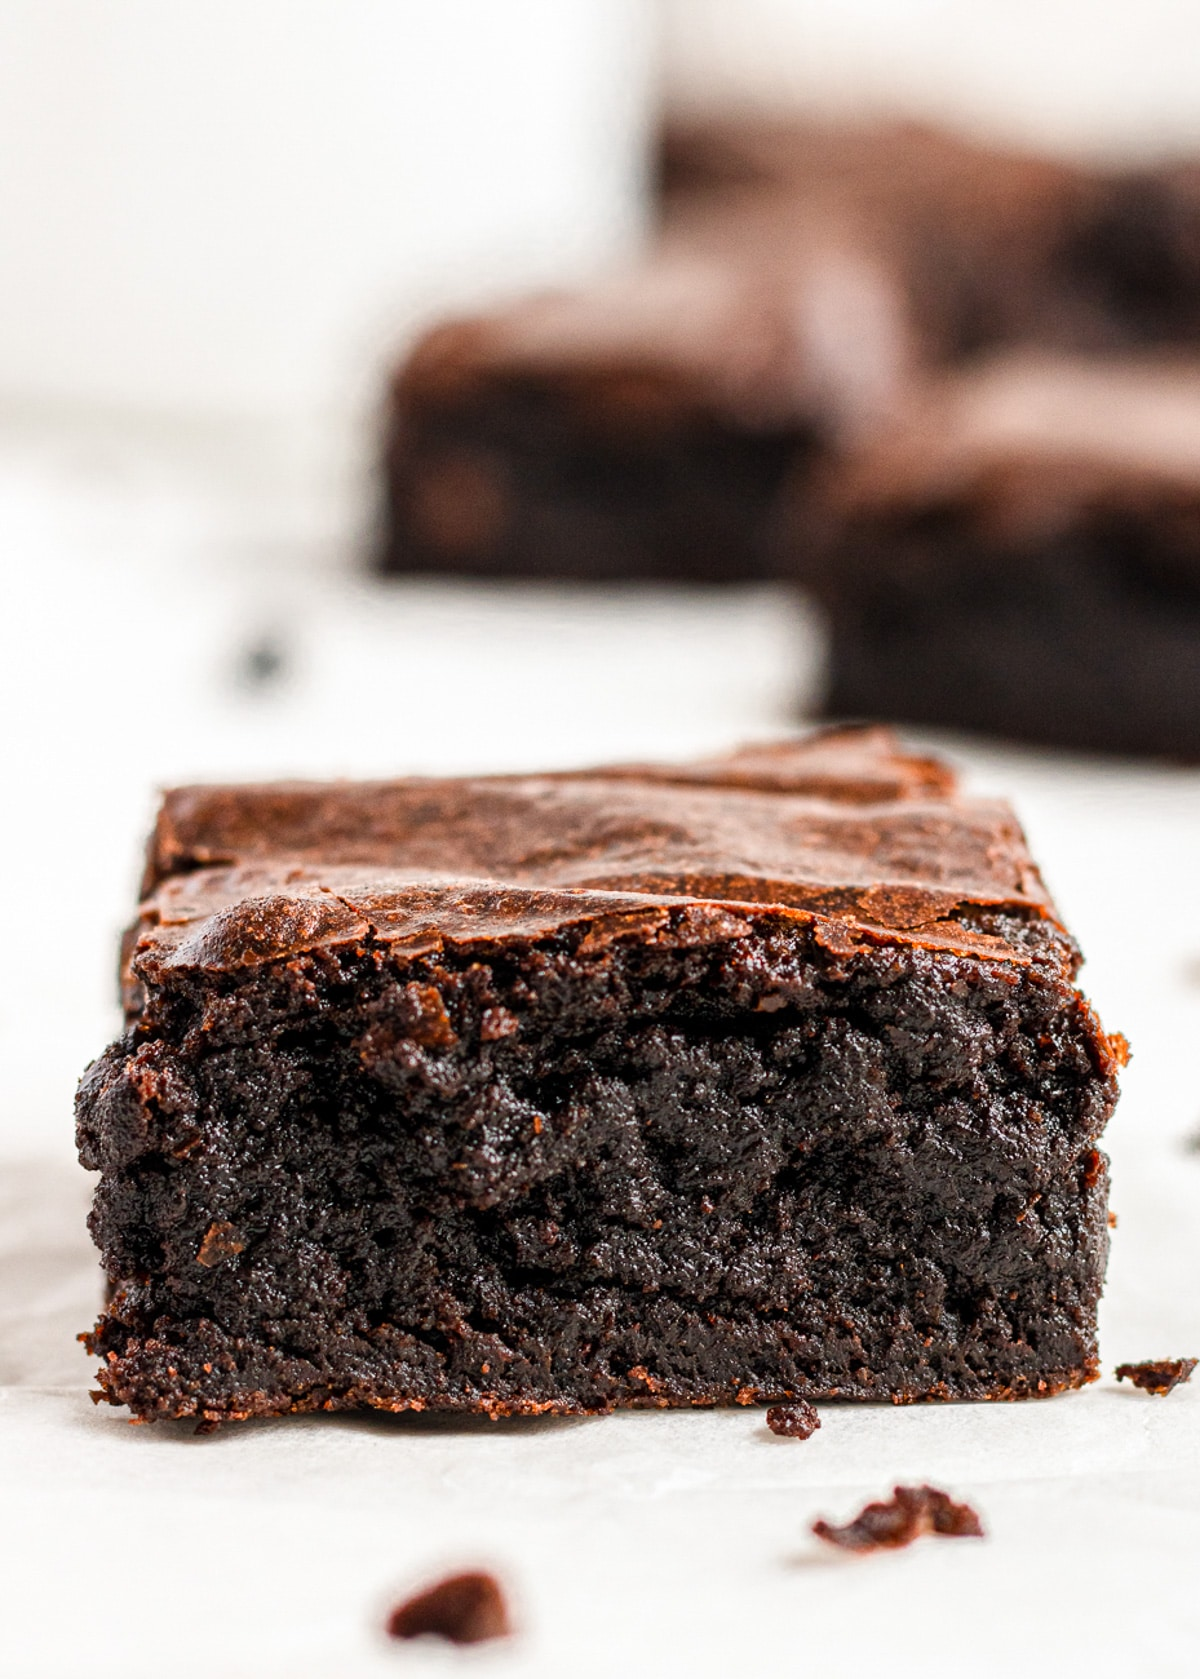 sliced dairy free fudgy brownie on parchemnt and more brownies in the background